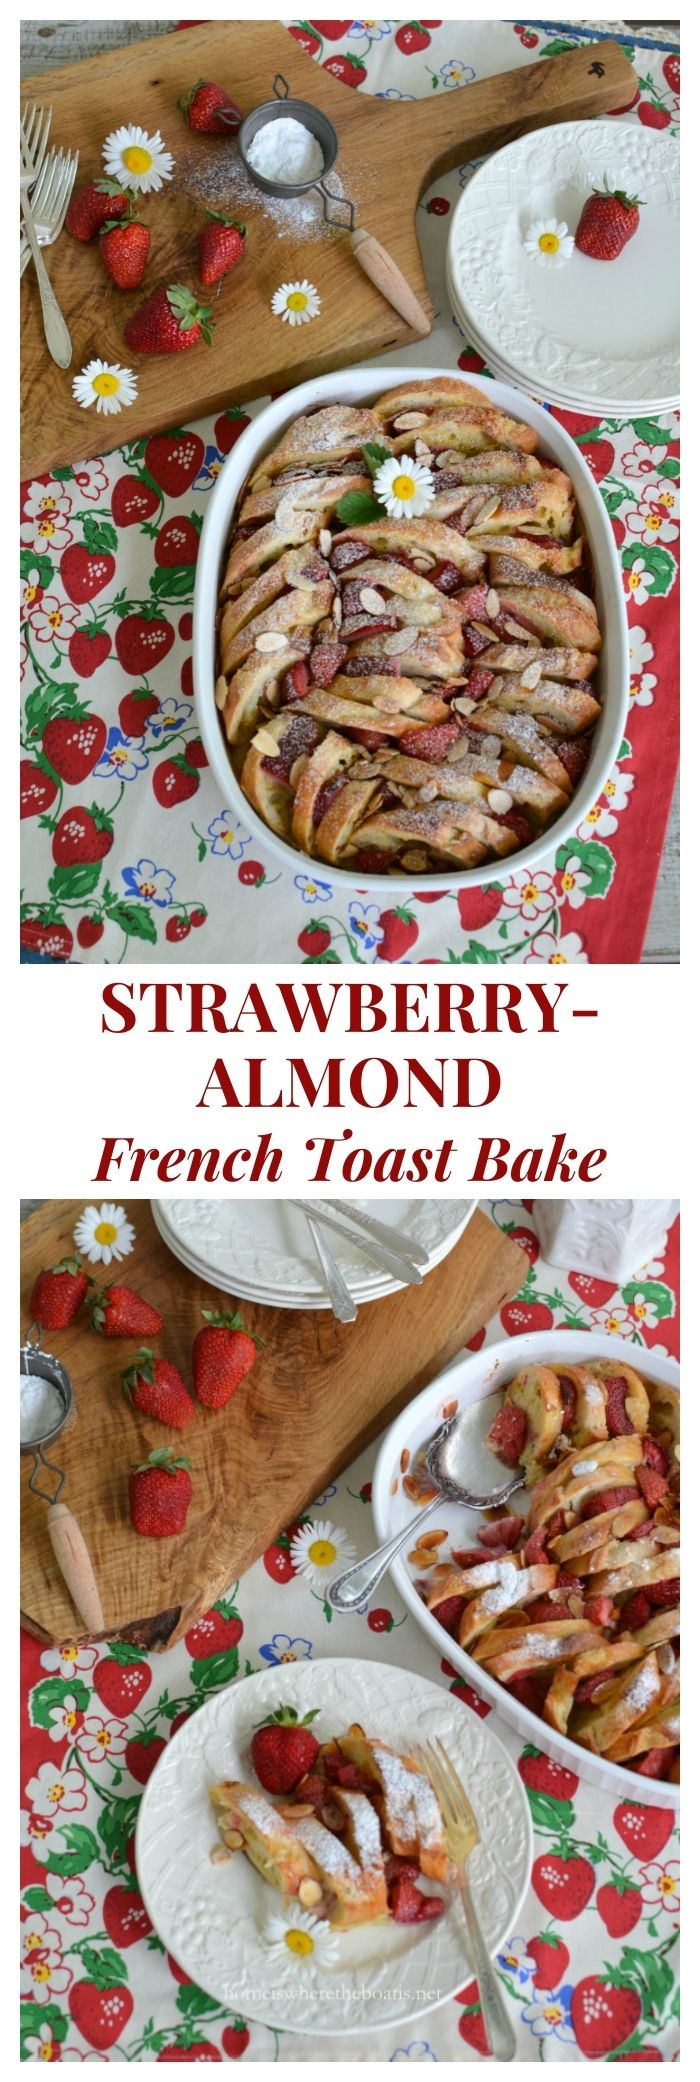 Strawberry-Almond French Toast Bake | ©homeiswheretheboatis.net #brunch #recipe #easy #makeahead #strawberry #mothersday